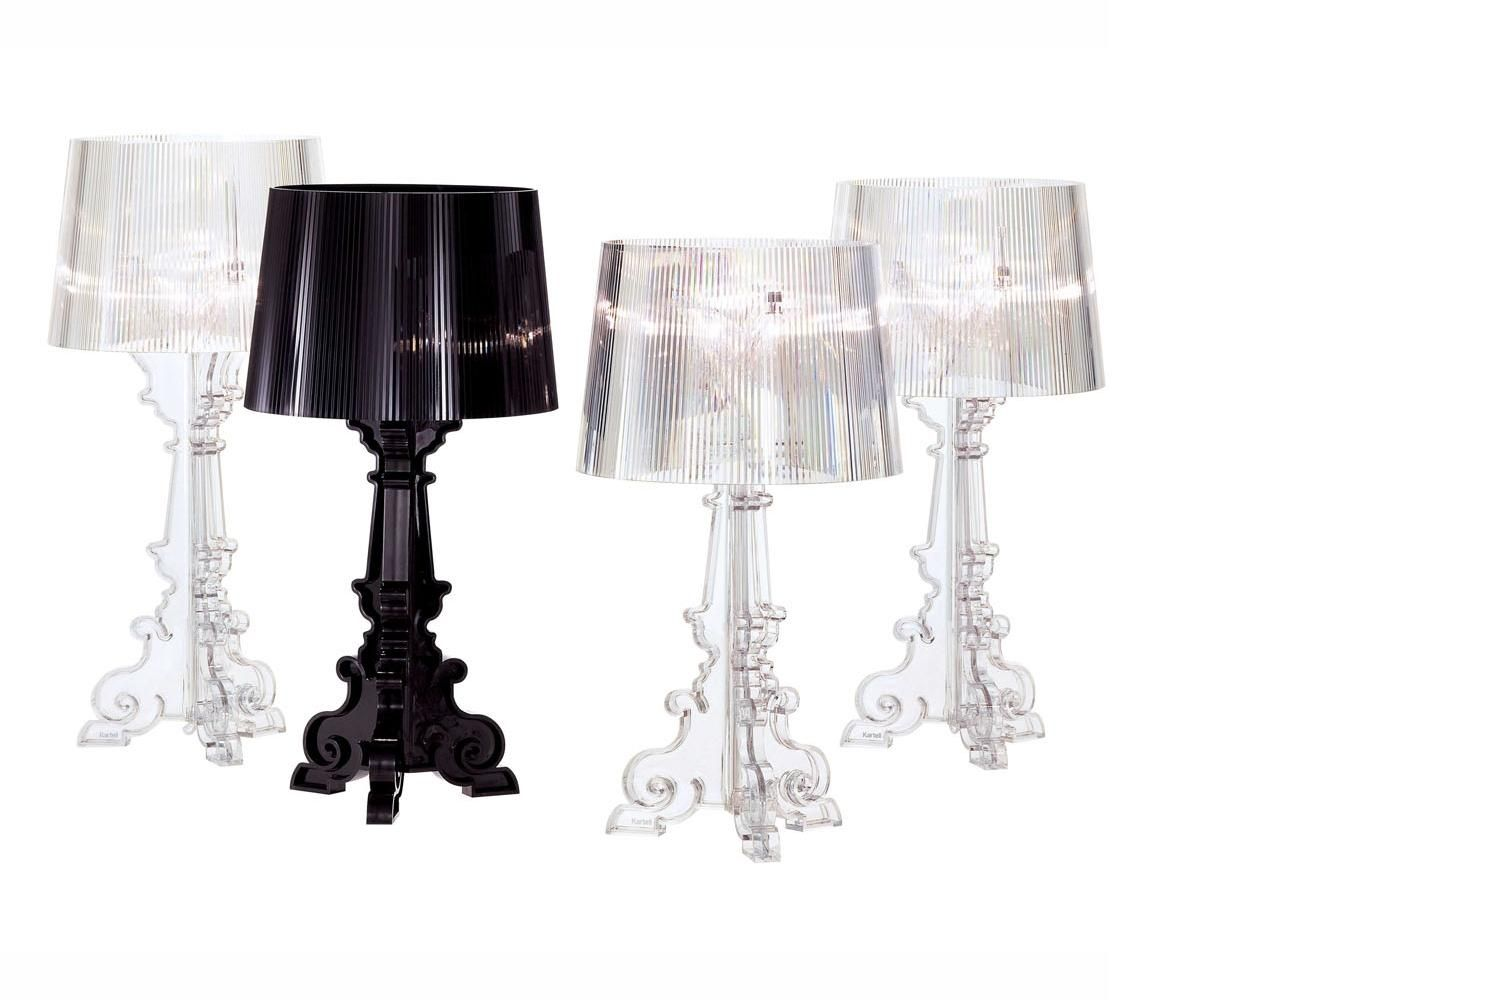 Bourgie Lampe Bourgie Table Lamp By Ferruccio Laviani For Kartell Dee Why Unit